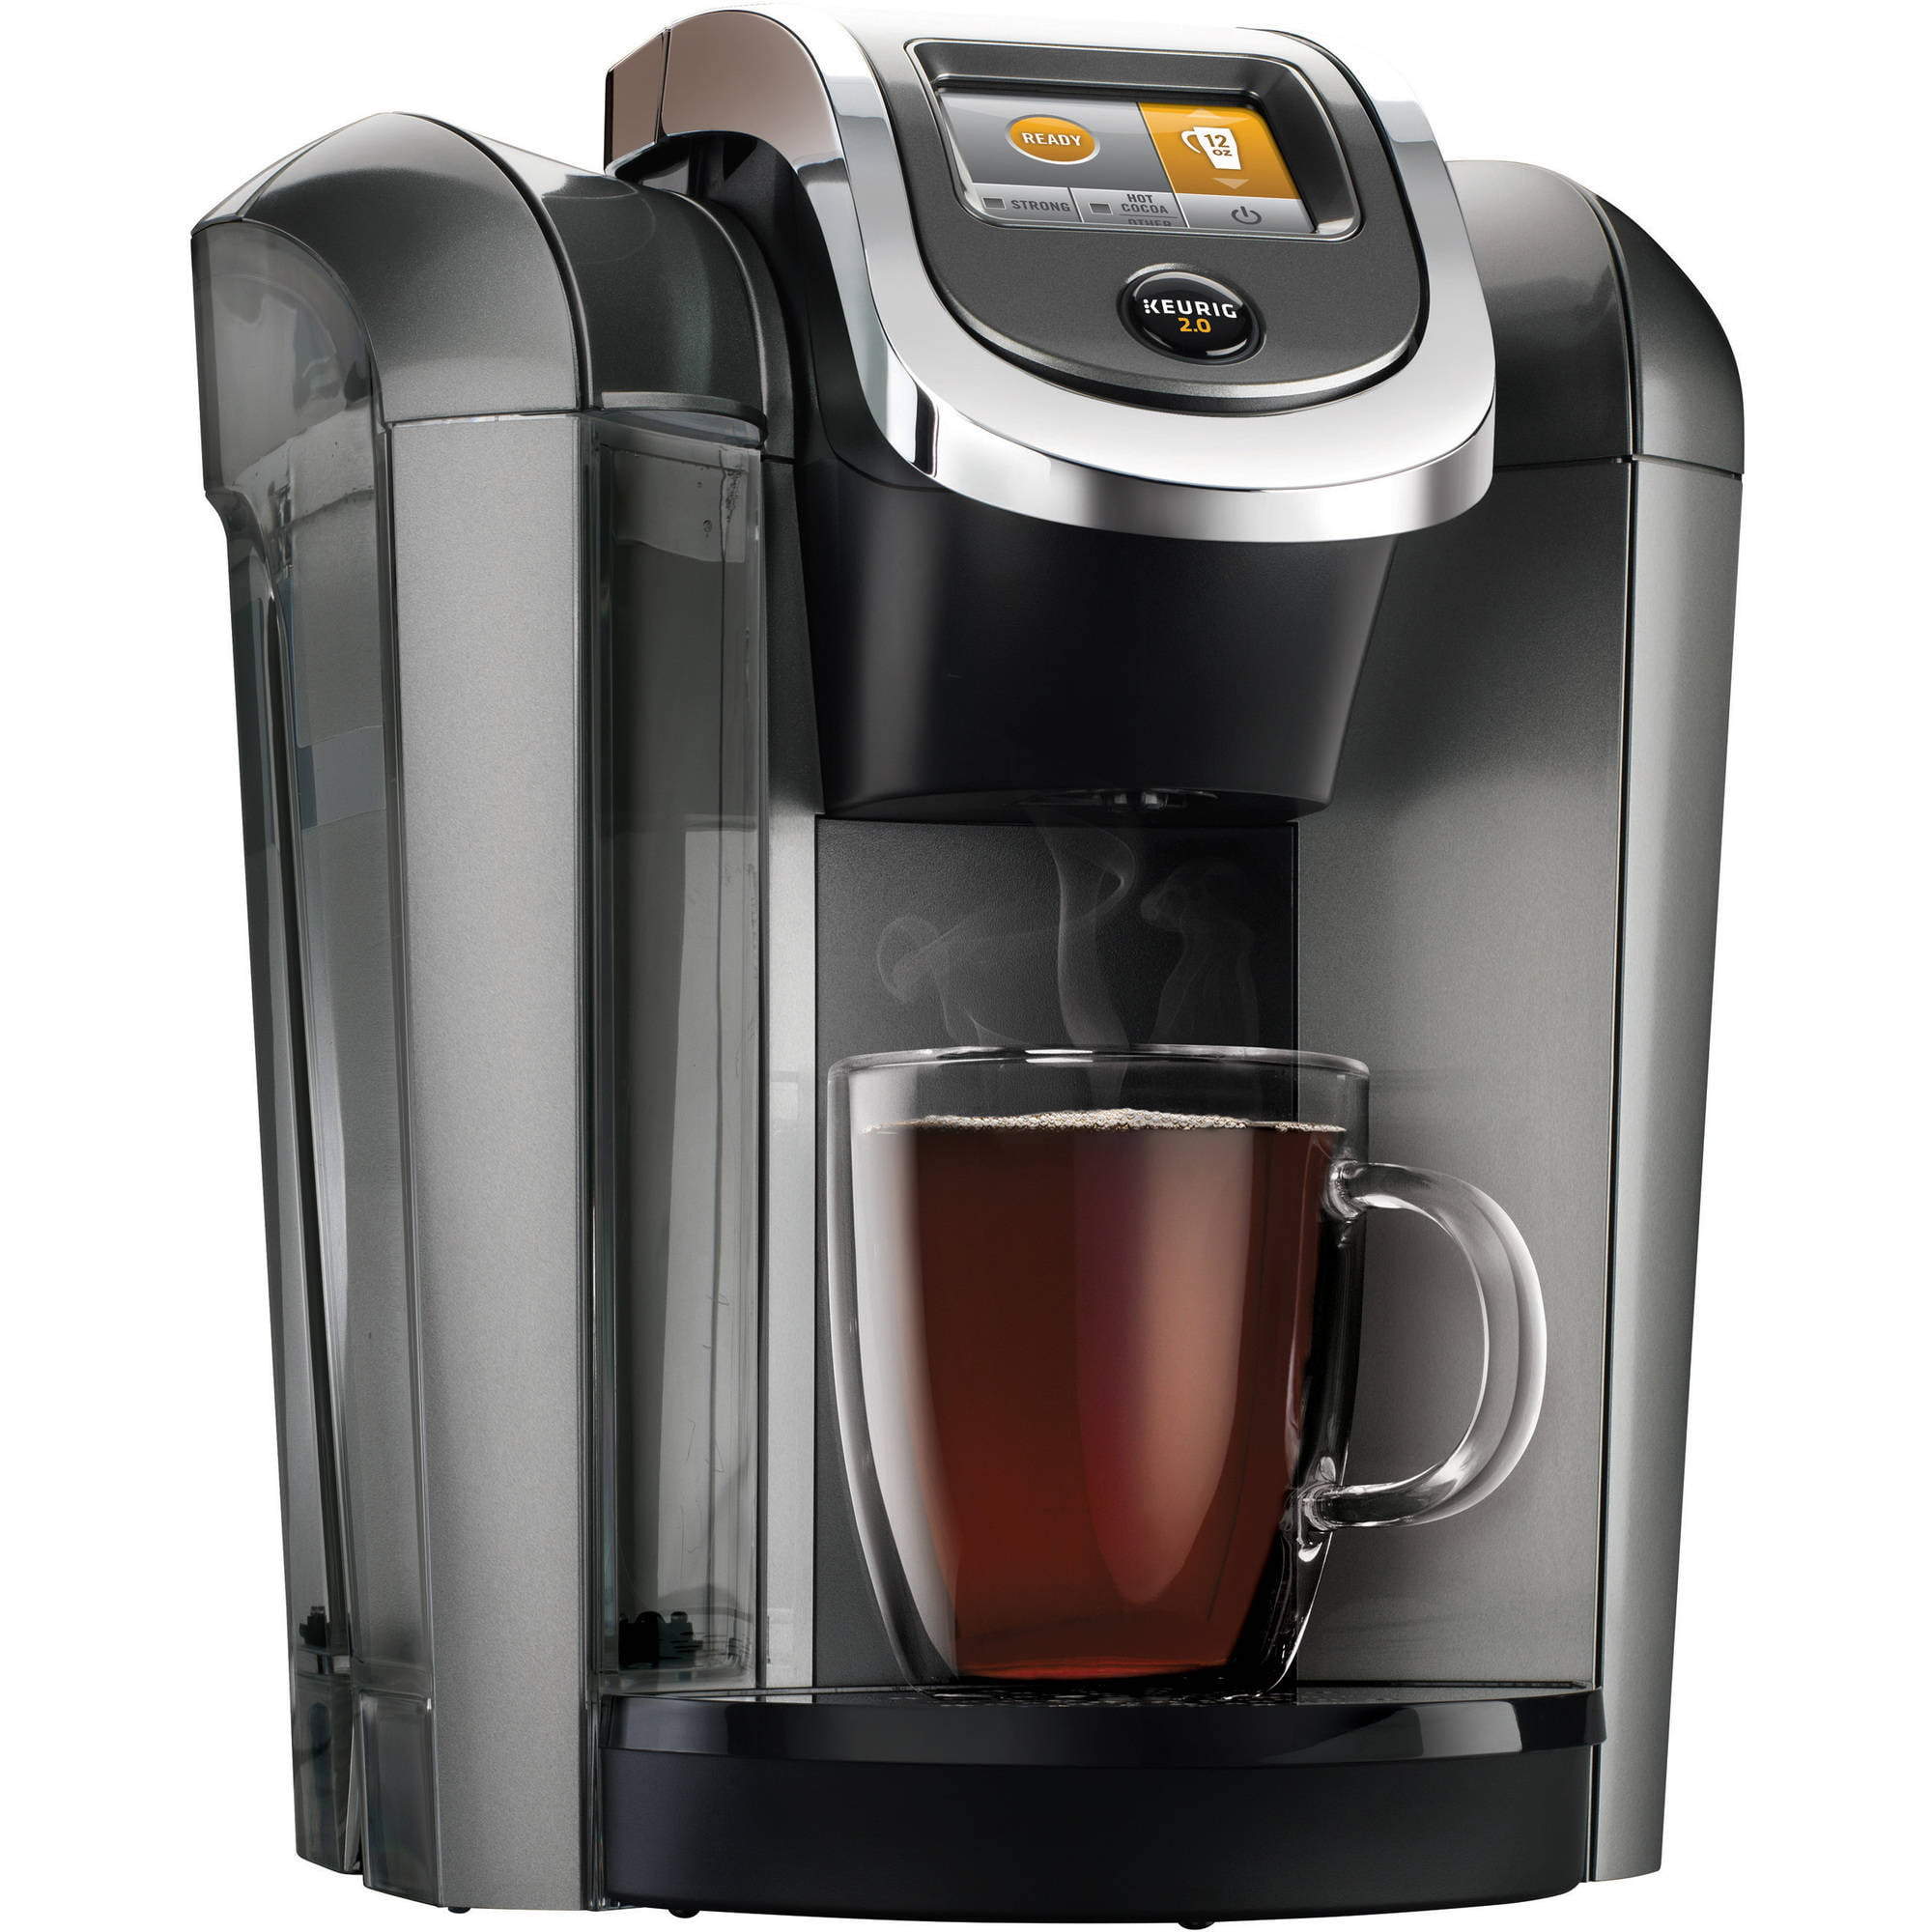 Keurig Coffee Maker Instructions : Keurig K425 Coffee Maker - Walmart.com